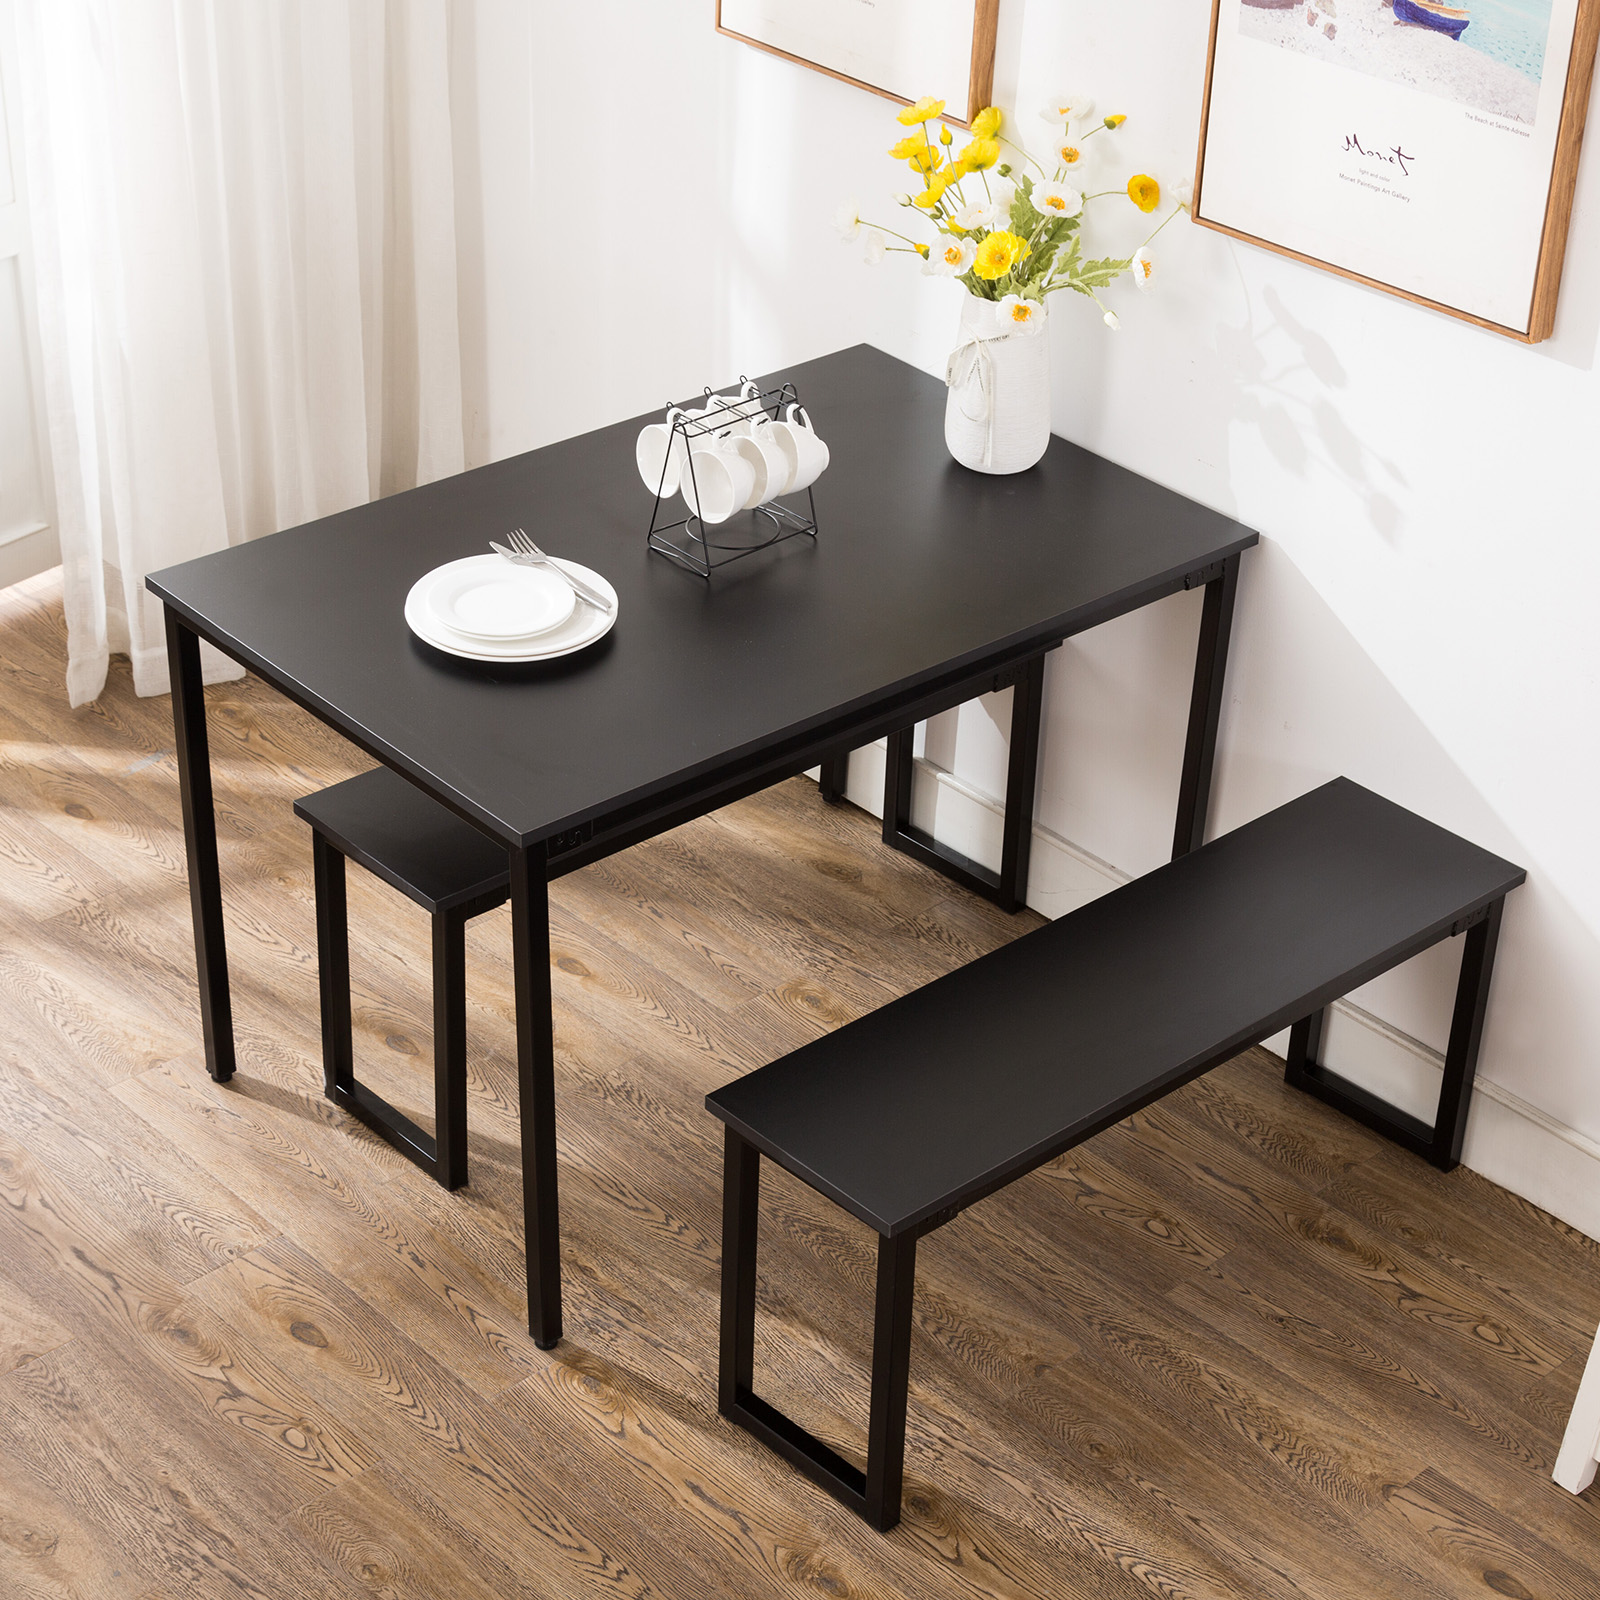 Swell Details About 3 Piece Dining Table Set 2 Chairs Bench Kitchen Dining Room Breakfast Nook Black Interior Design Ideas Gentotryabchikinfo